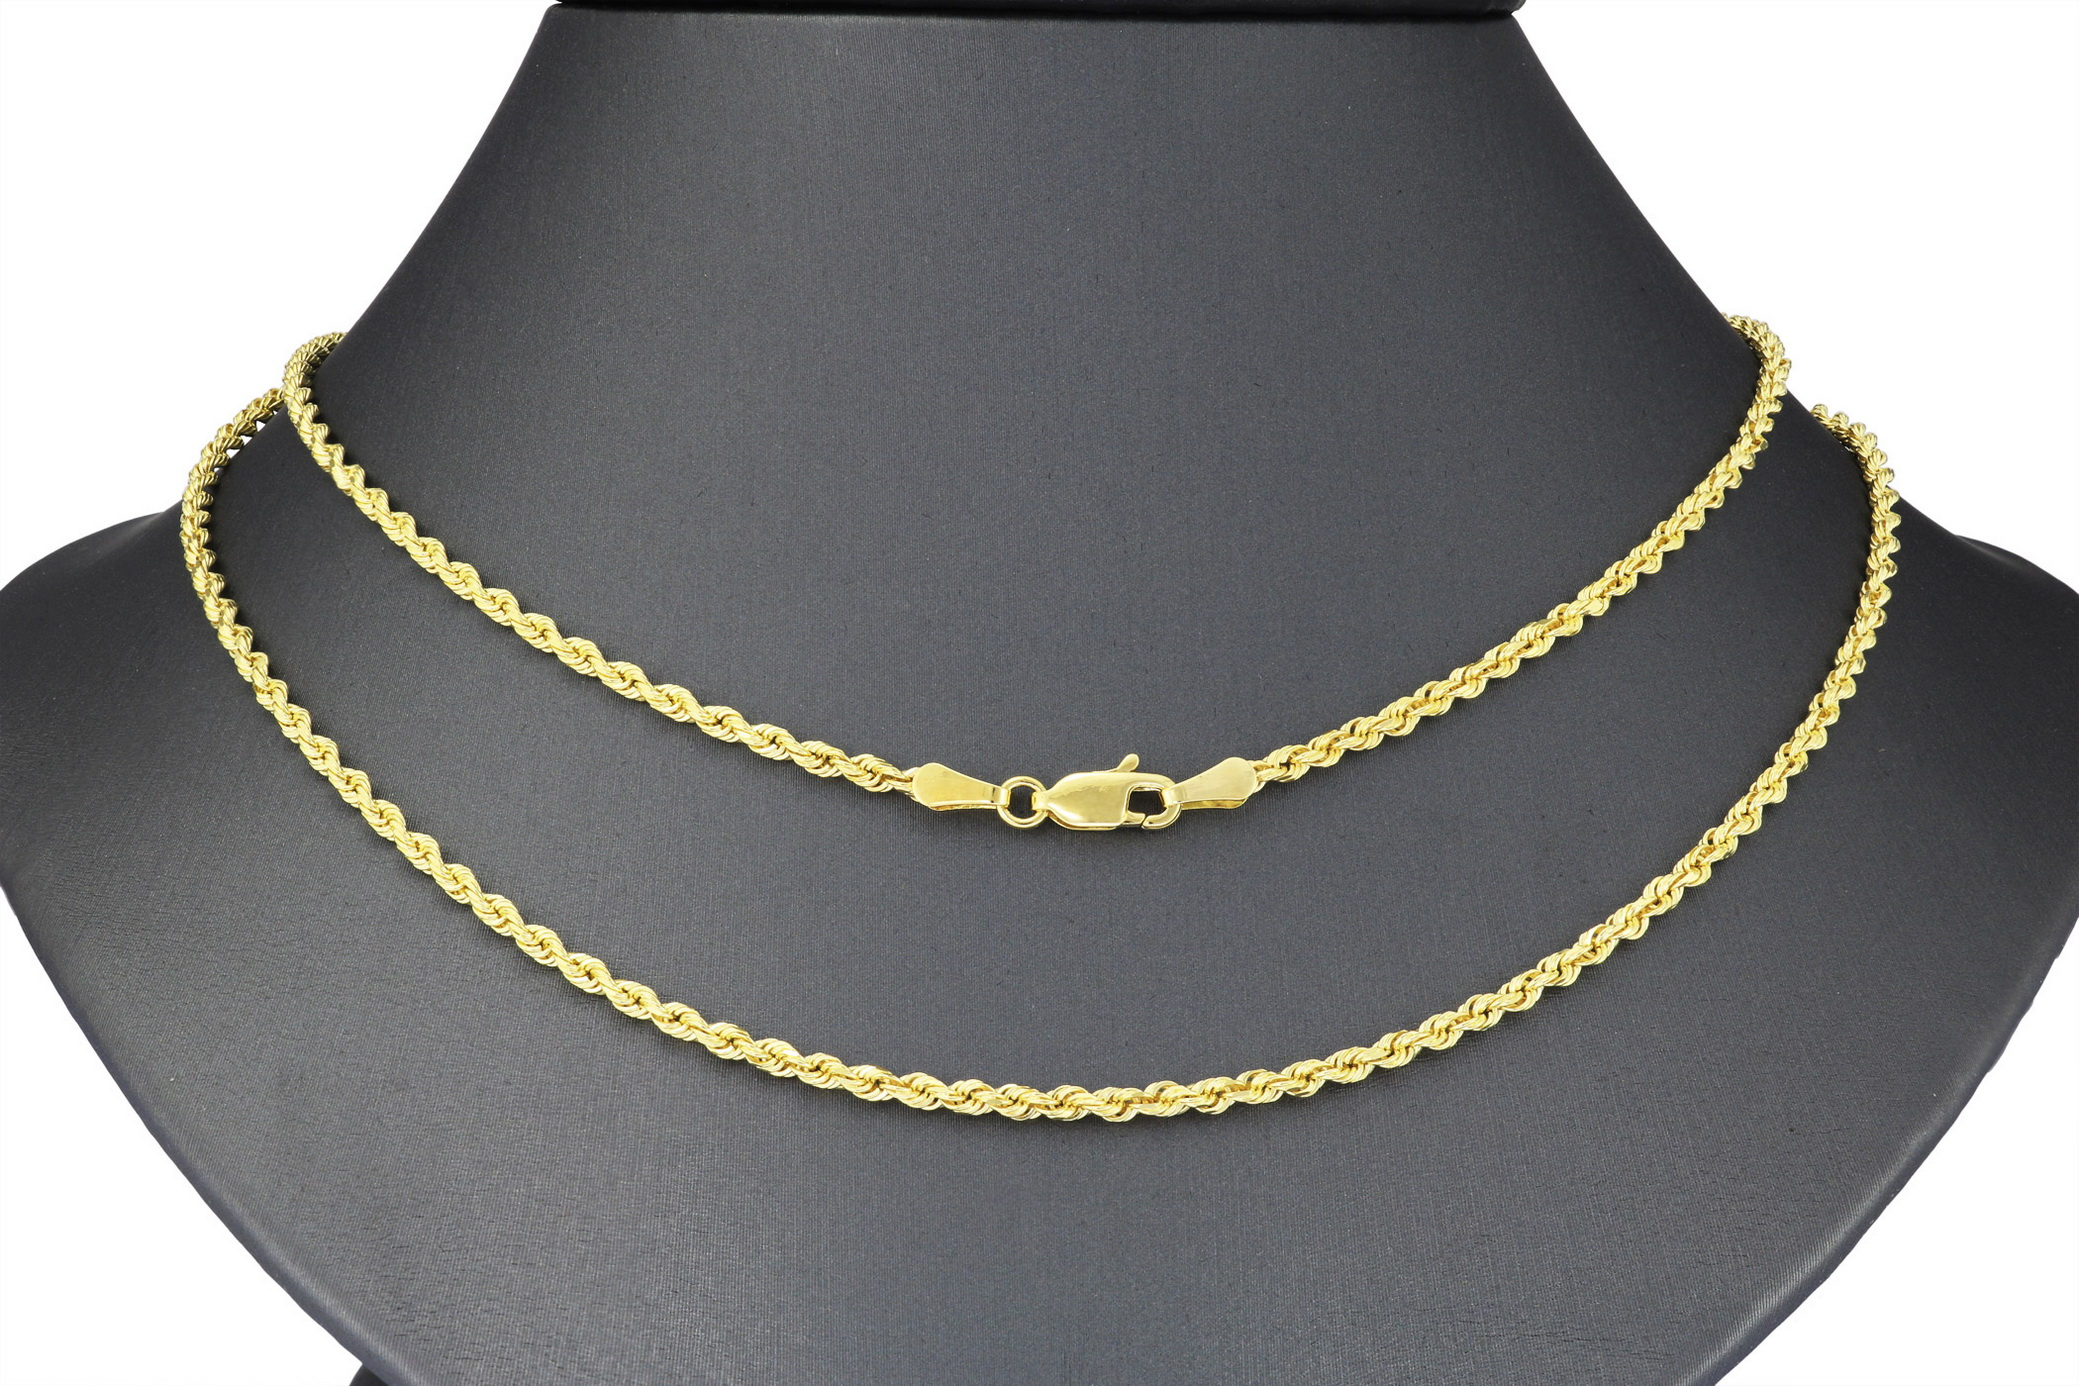 Real-14K-Yellow-Gold-2-5mm-Diamond-Cut-Rope-Chain-Link-Bracelet-Anklet-7-034-8-034-9-034 thumbnail 24